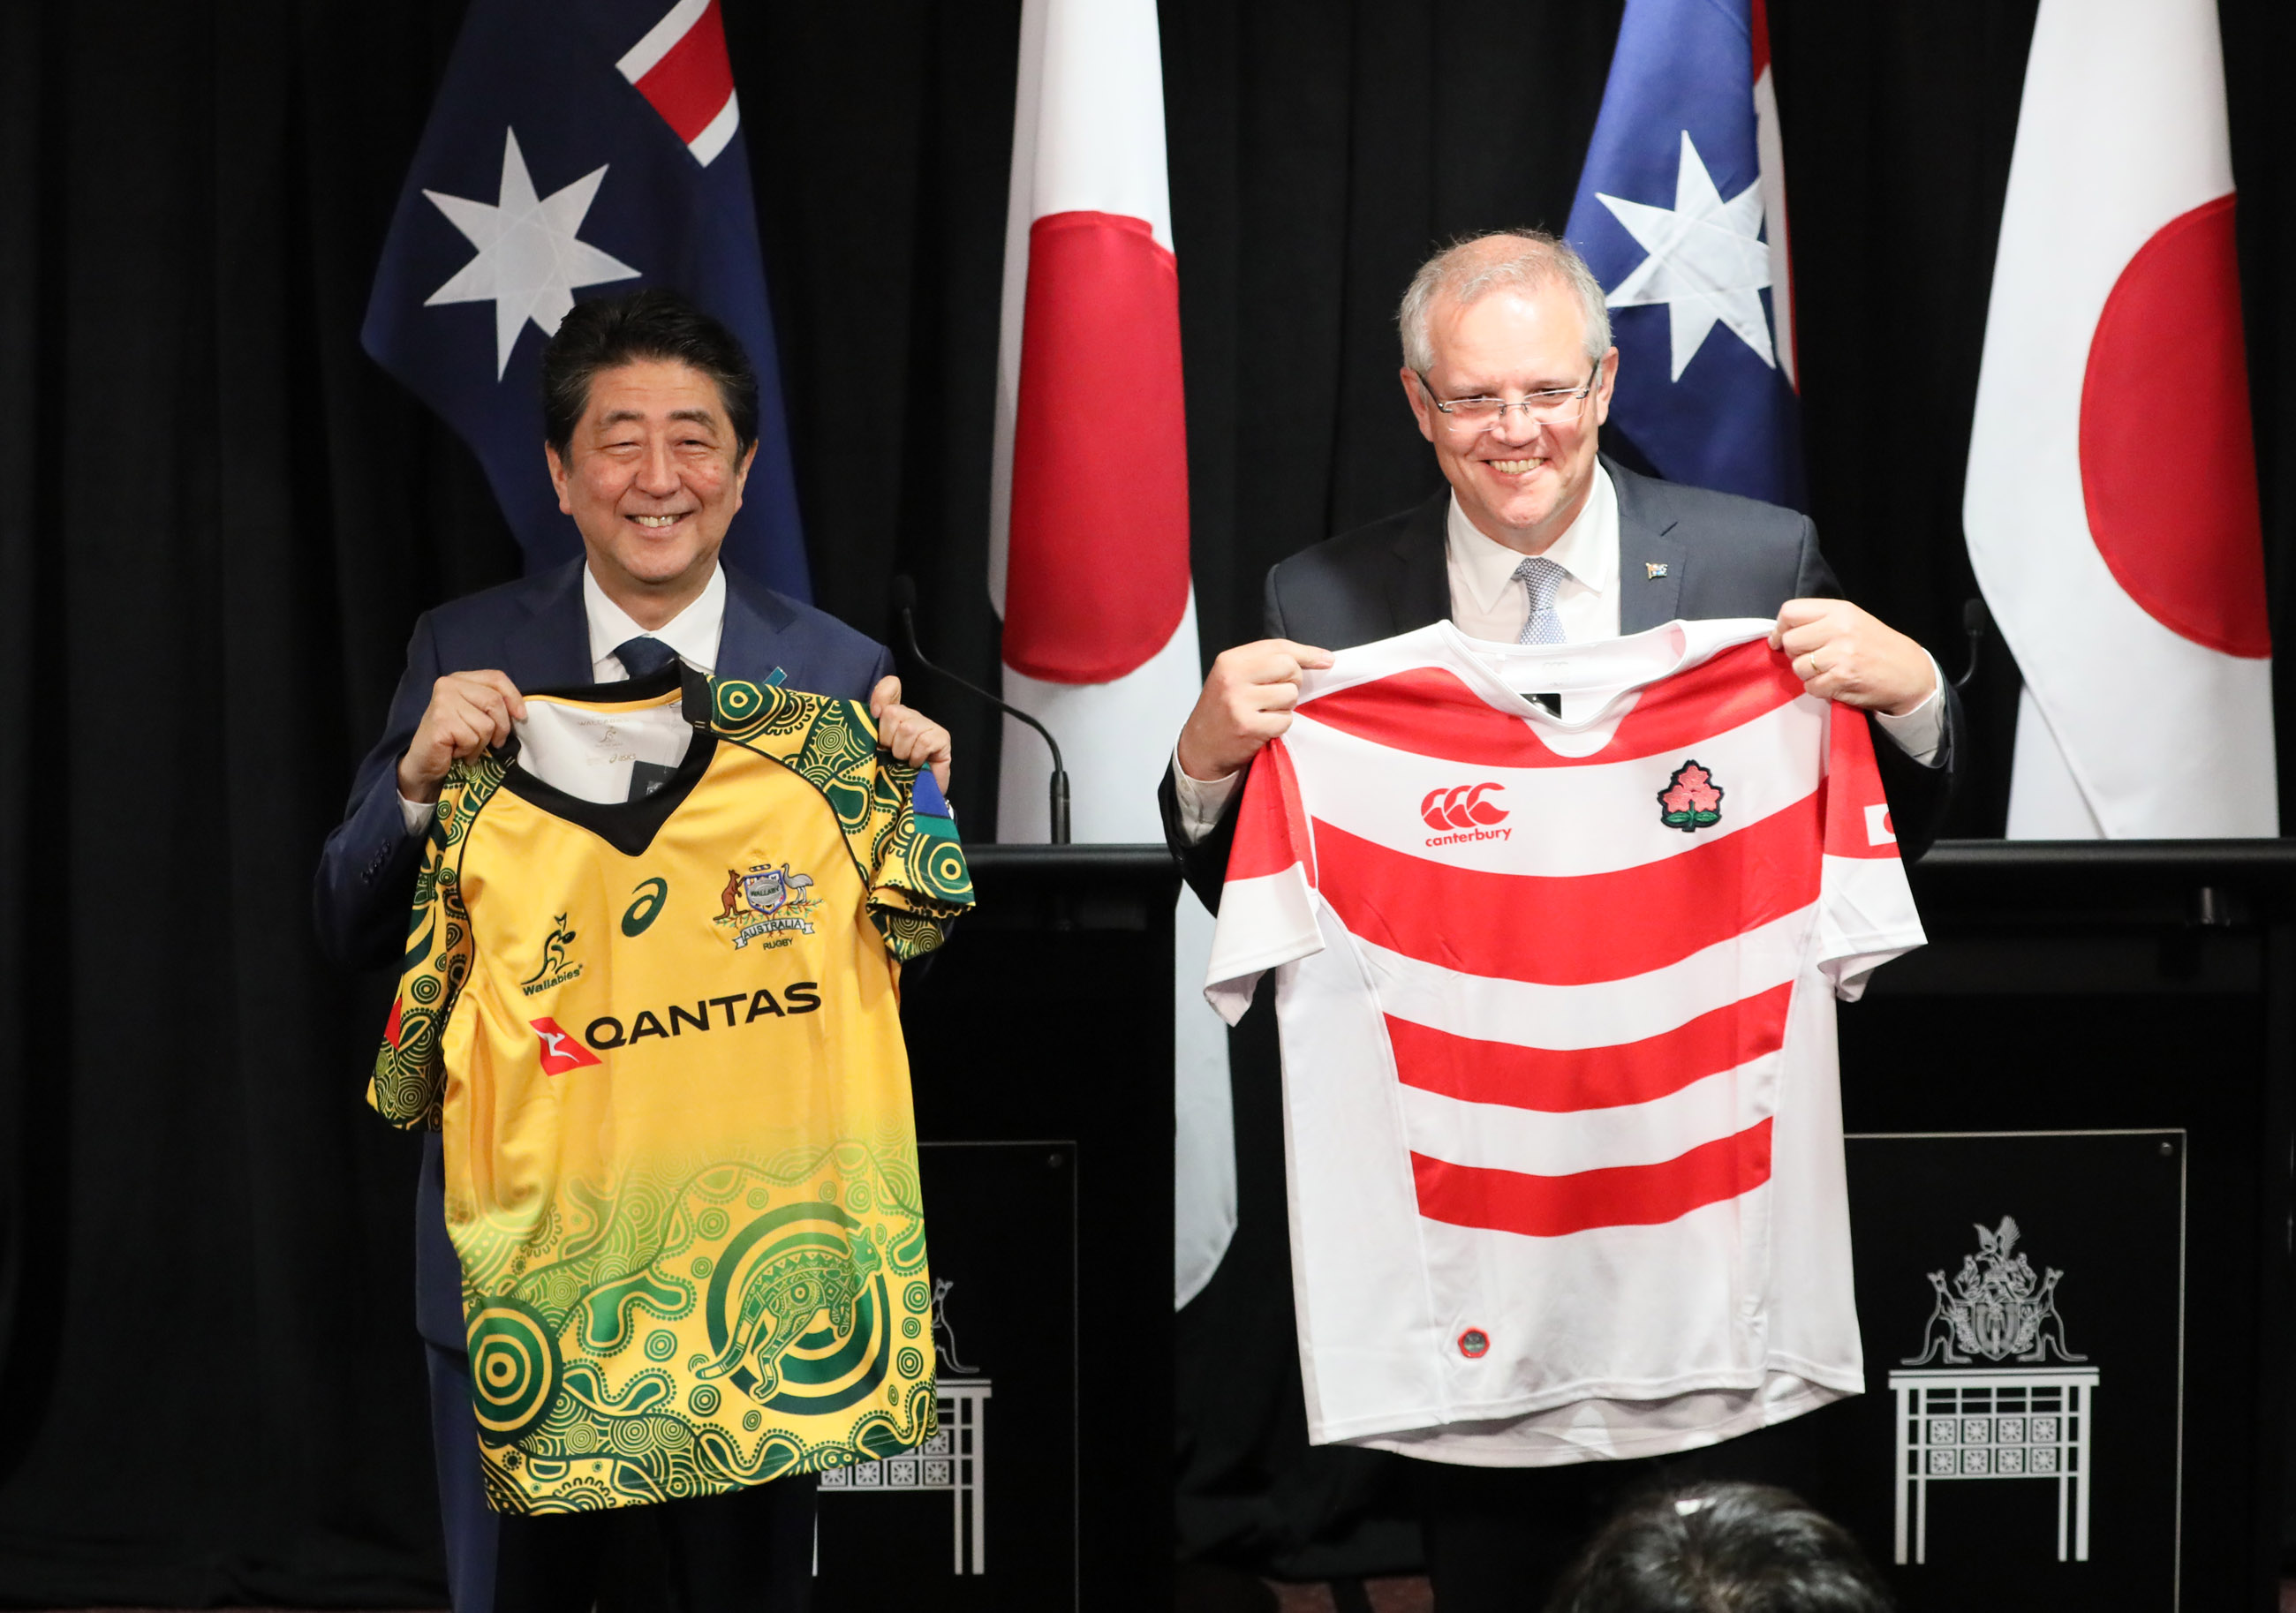 Photograph of the leaders exchanging national rugby jerseys